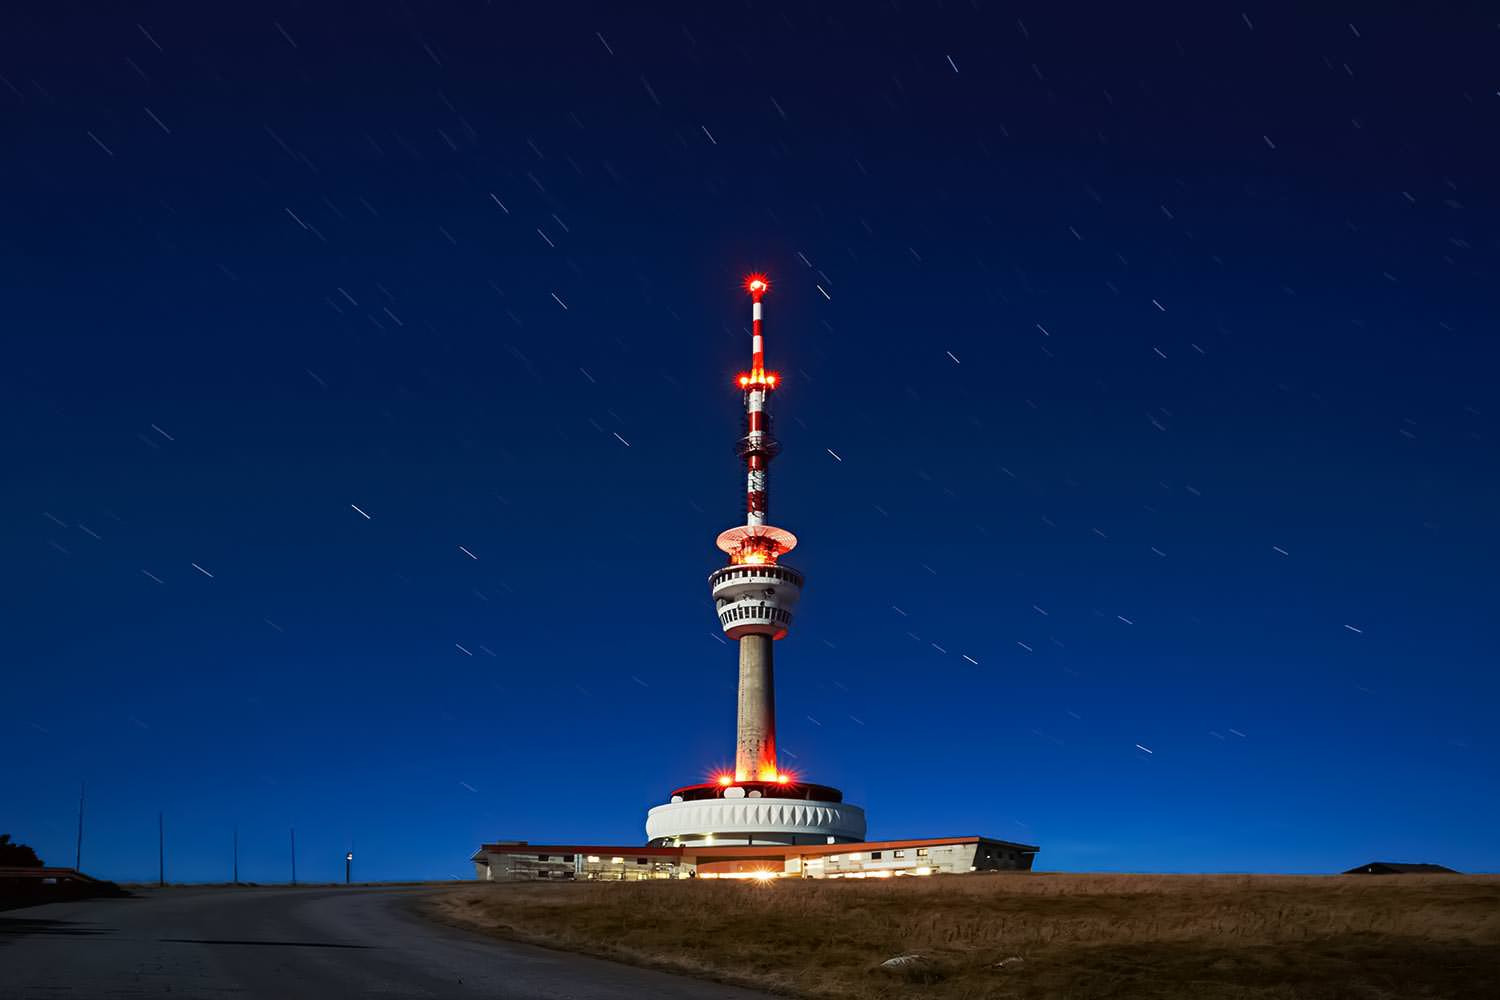 Praděd Tower at Night, Jeseníky, Czechia